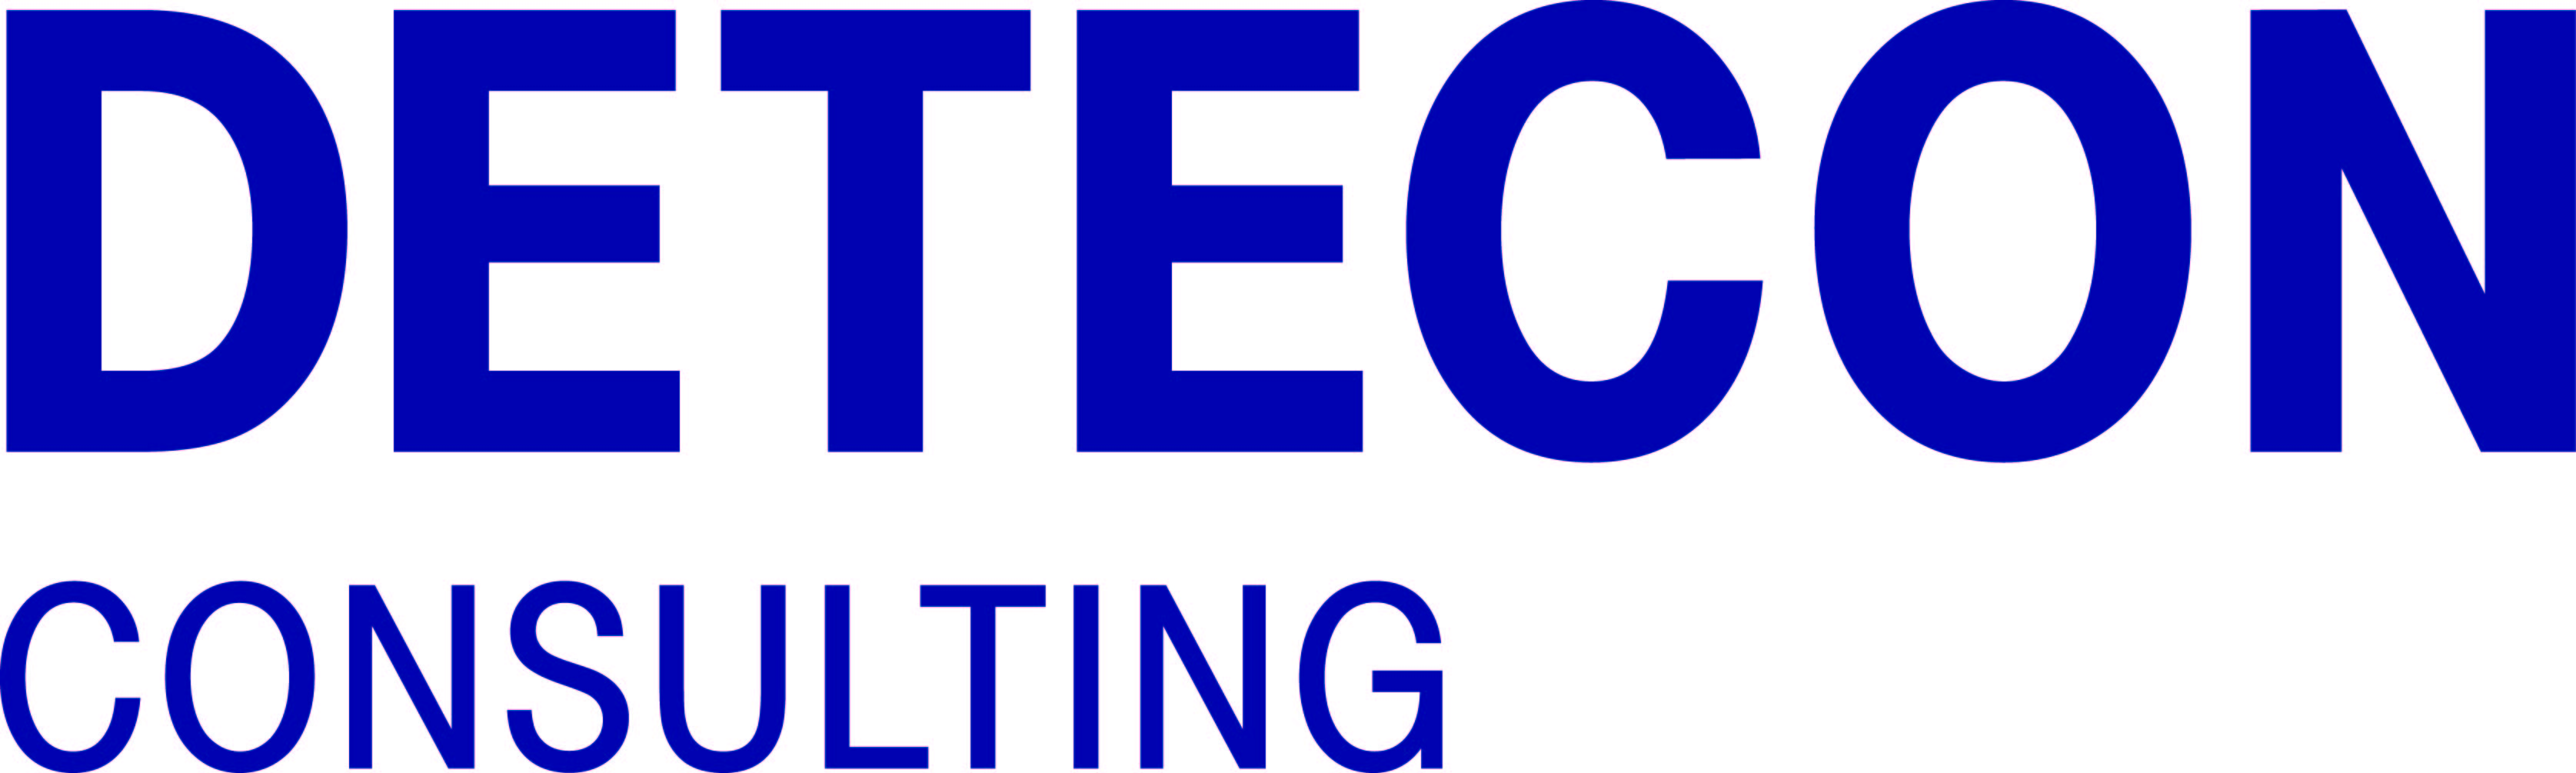 logo Detecon International GmbH